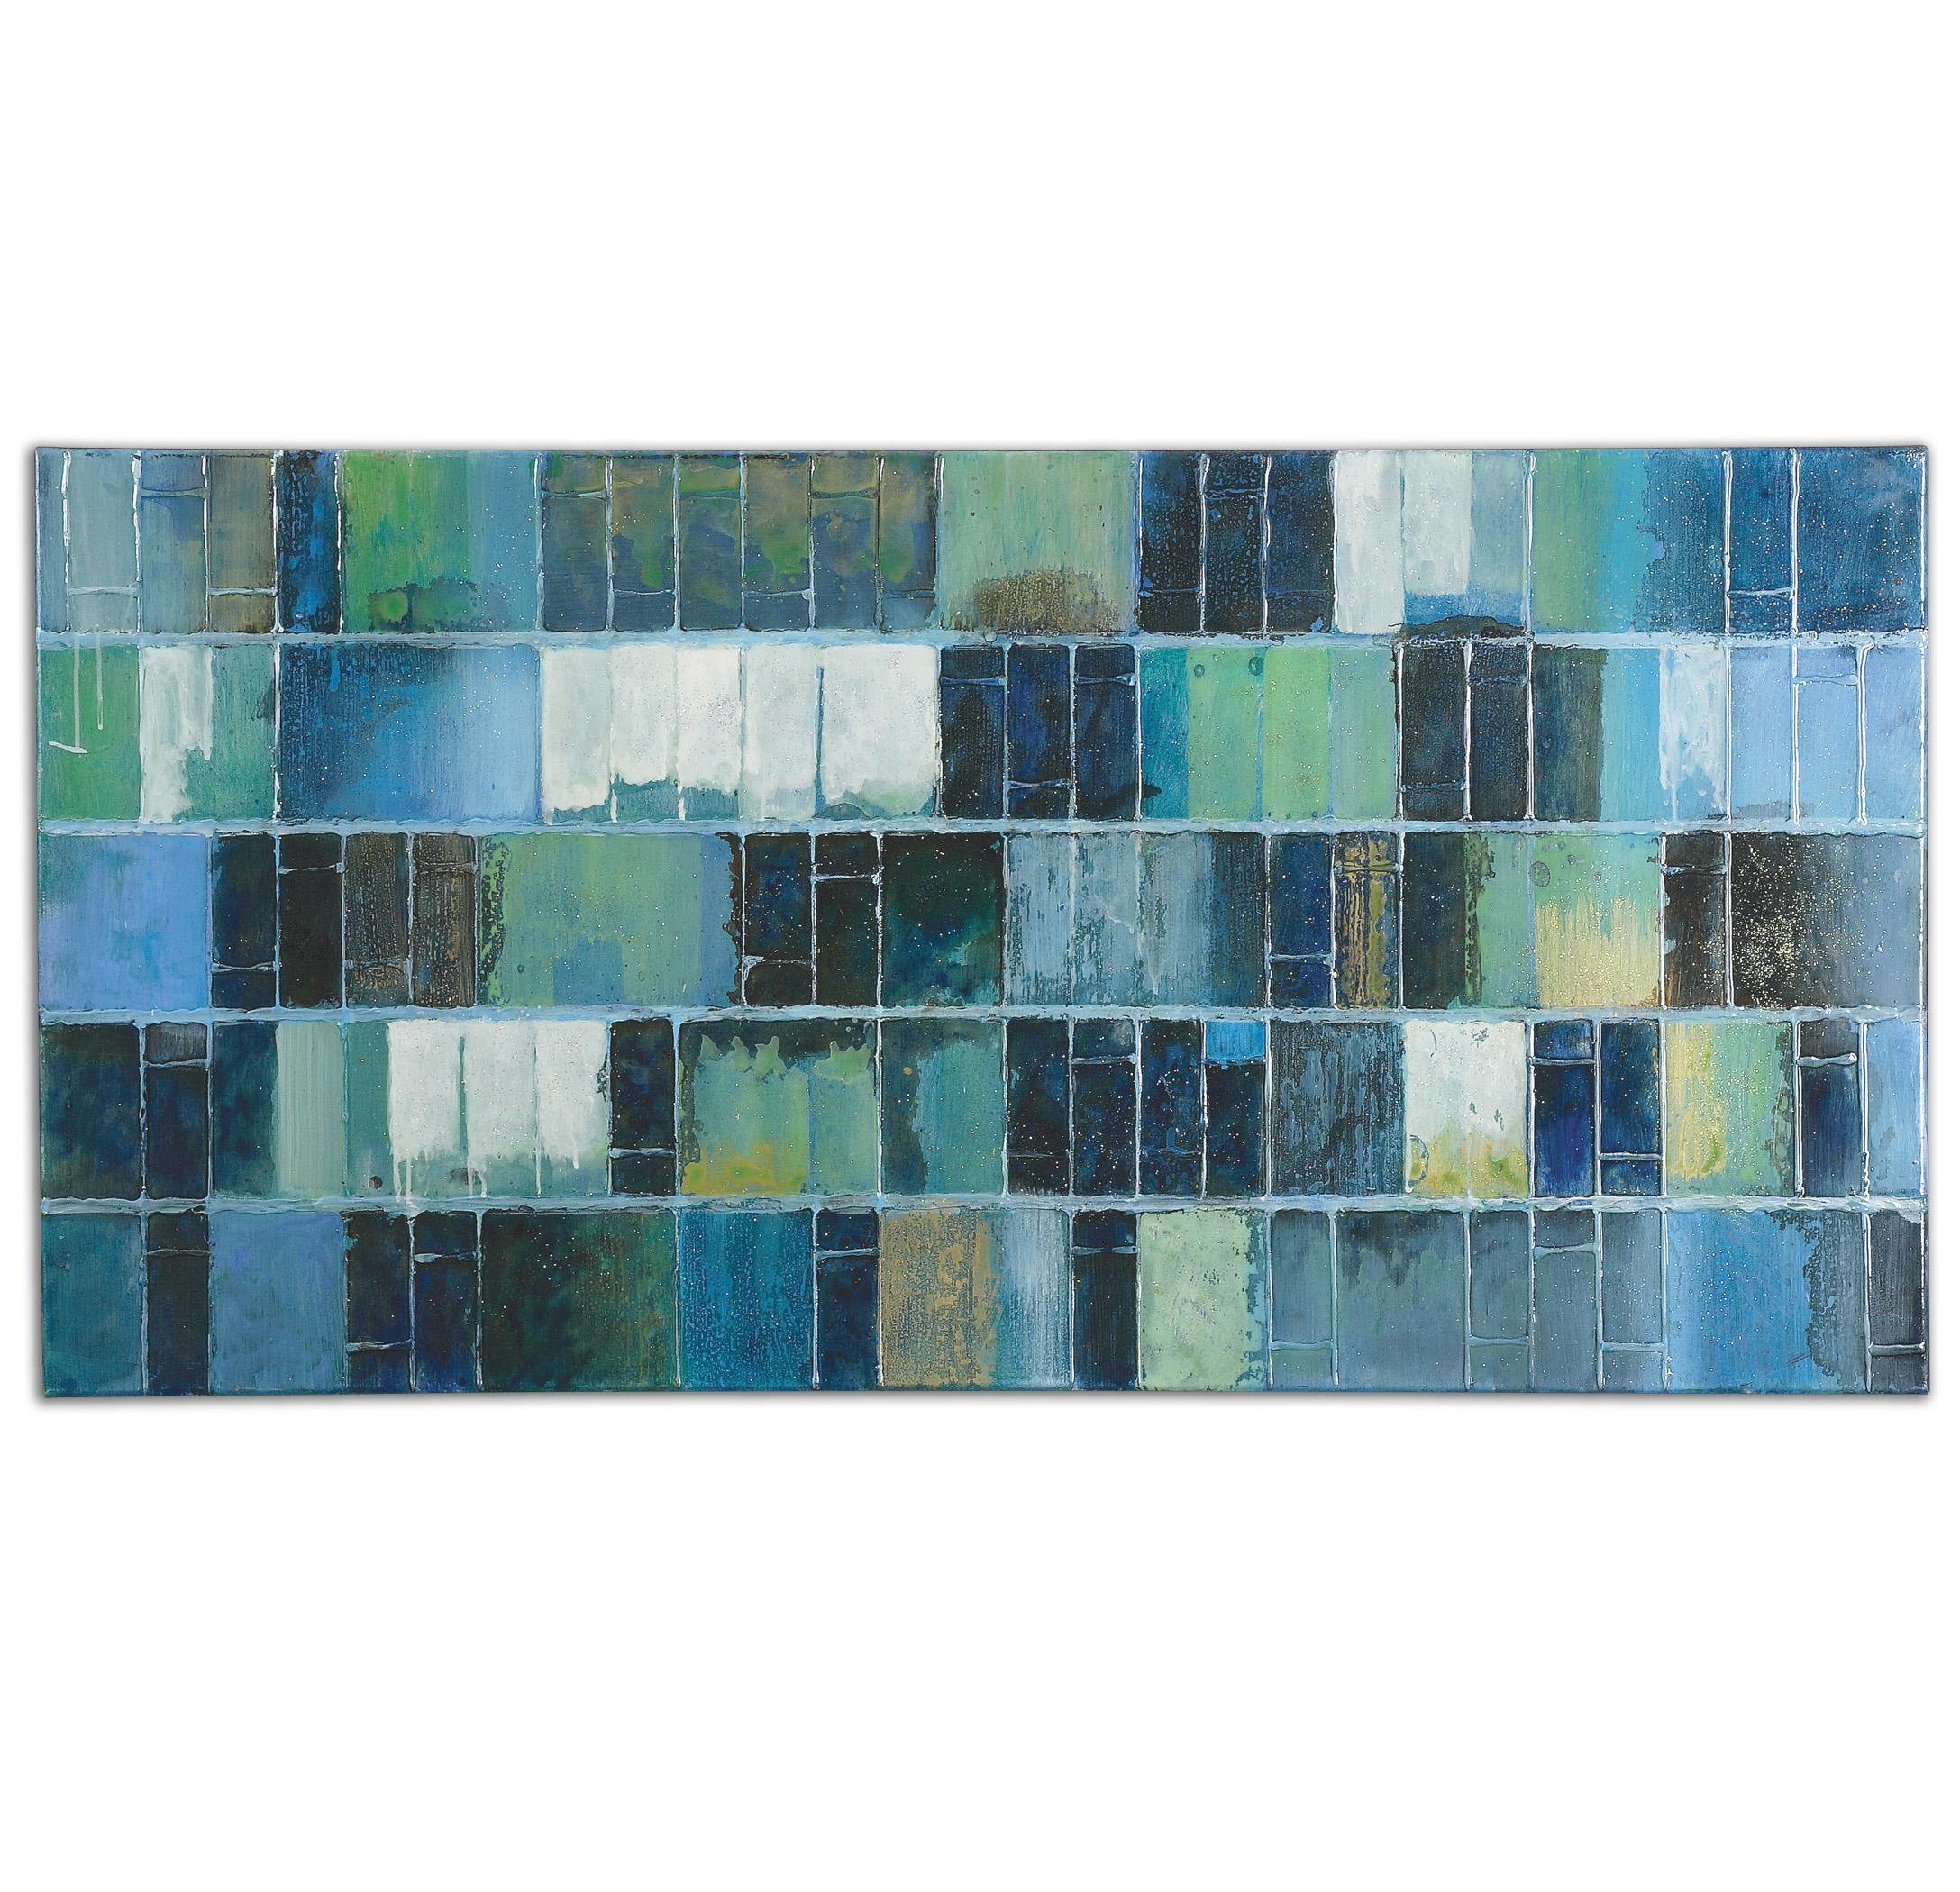 Uttermost Art Glass Tiles Modern Art - Item Number: 34300